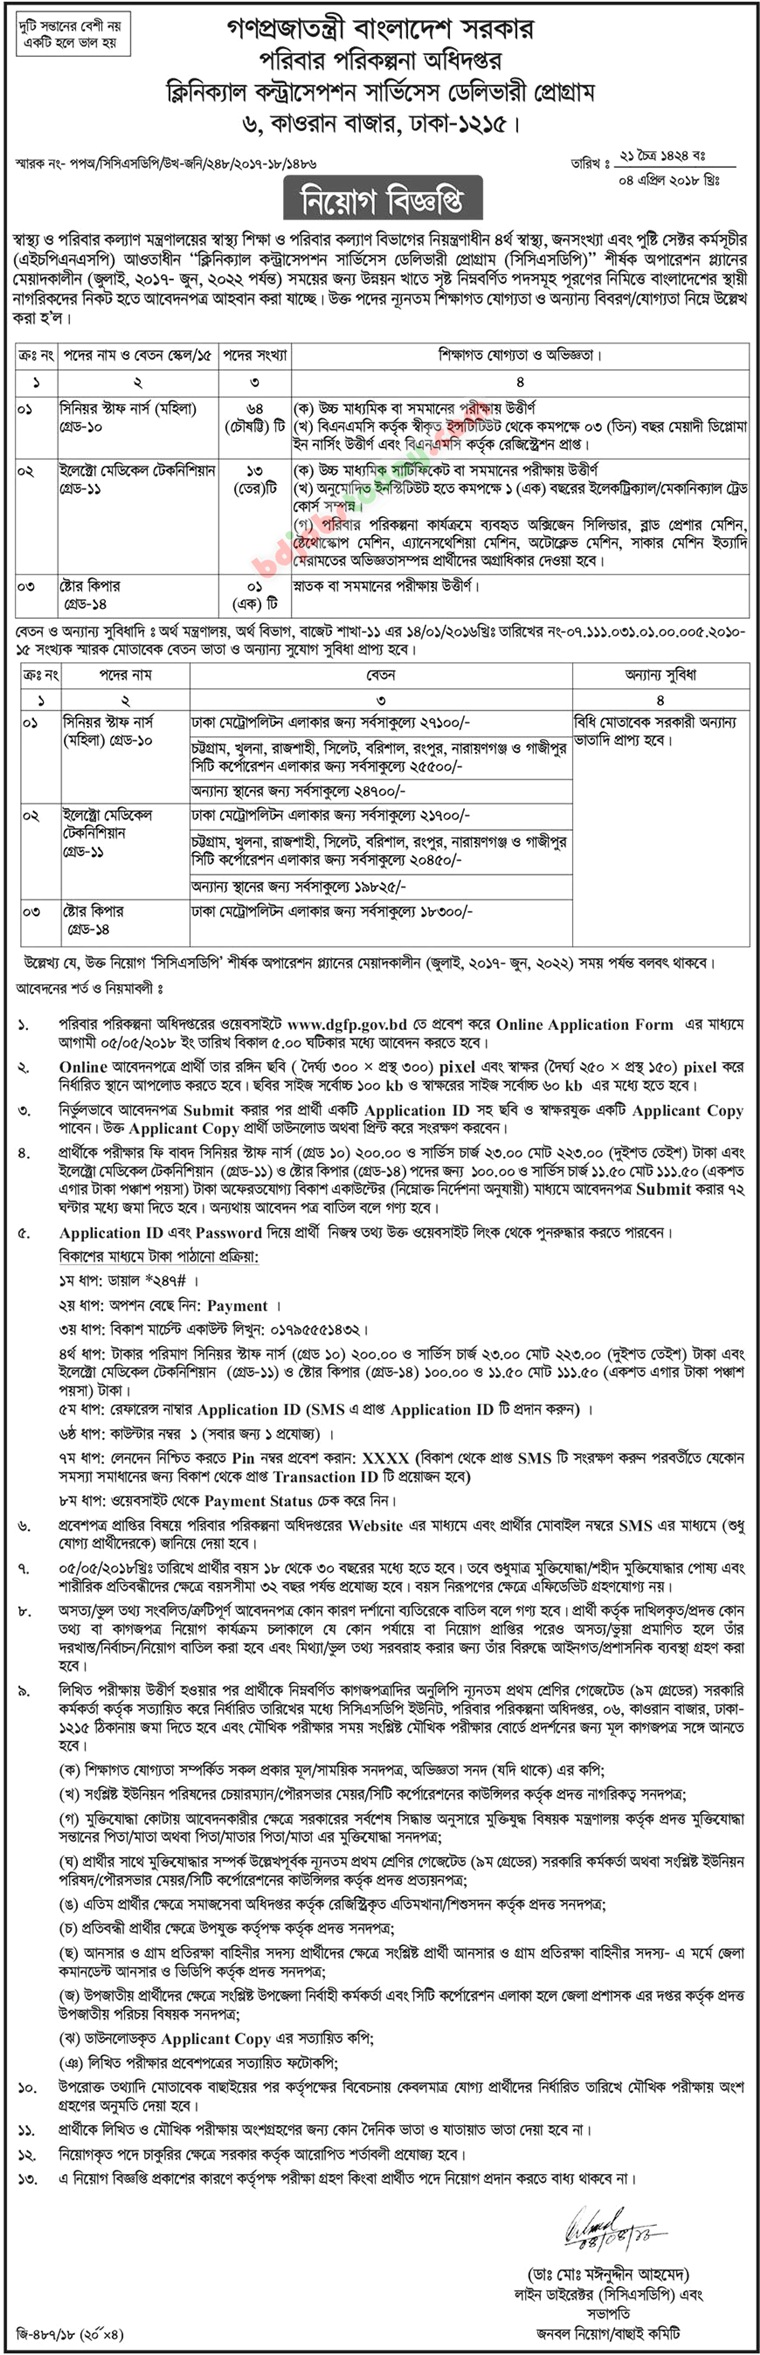 Department of Family Planning jobs